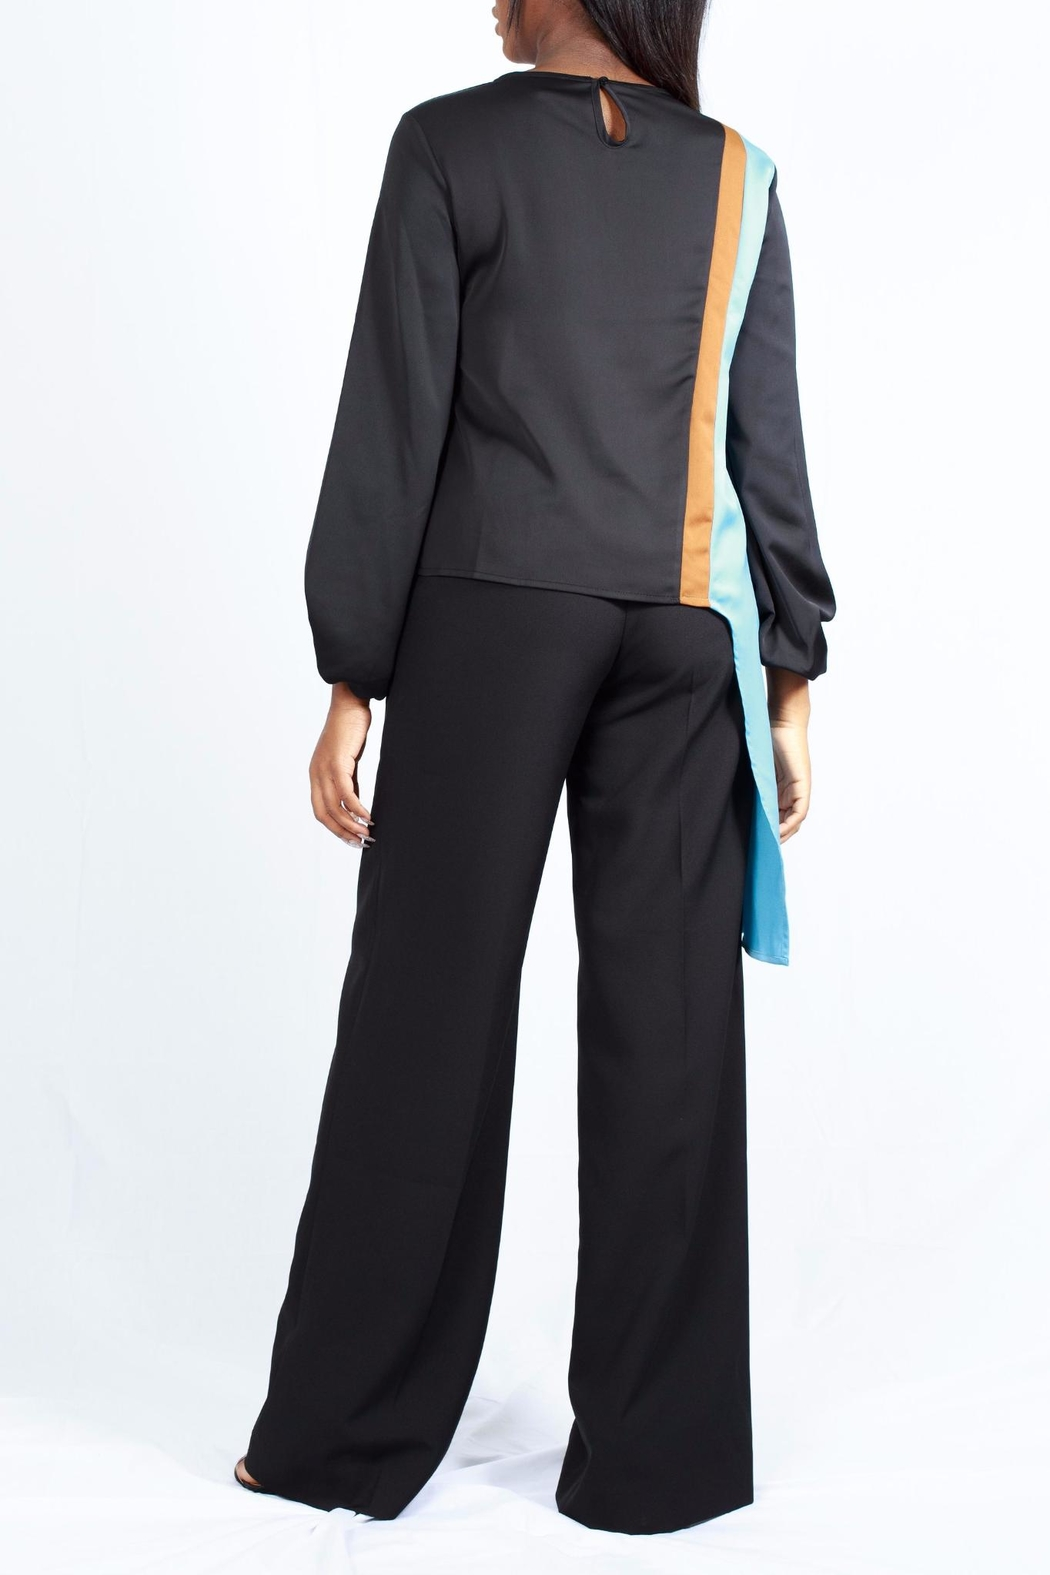 MODChic Couture Colorblock Striped Blouse - Side Cropped Image